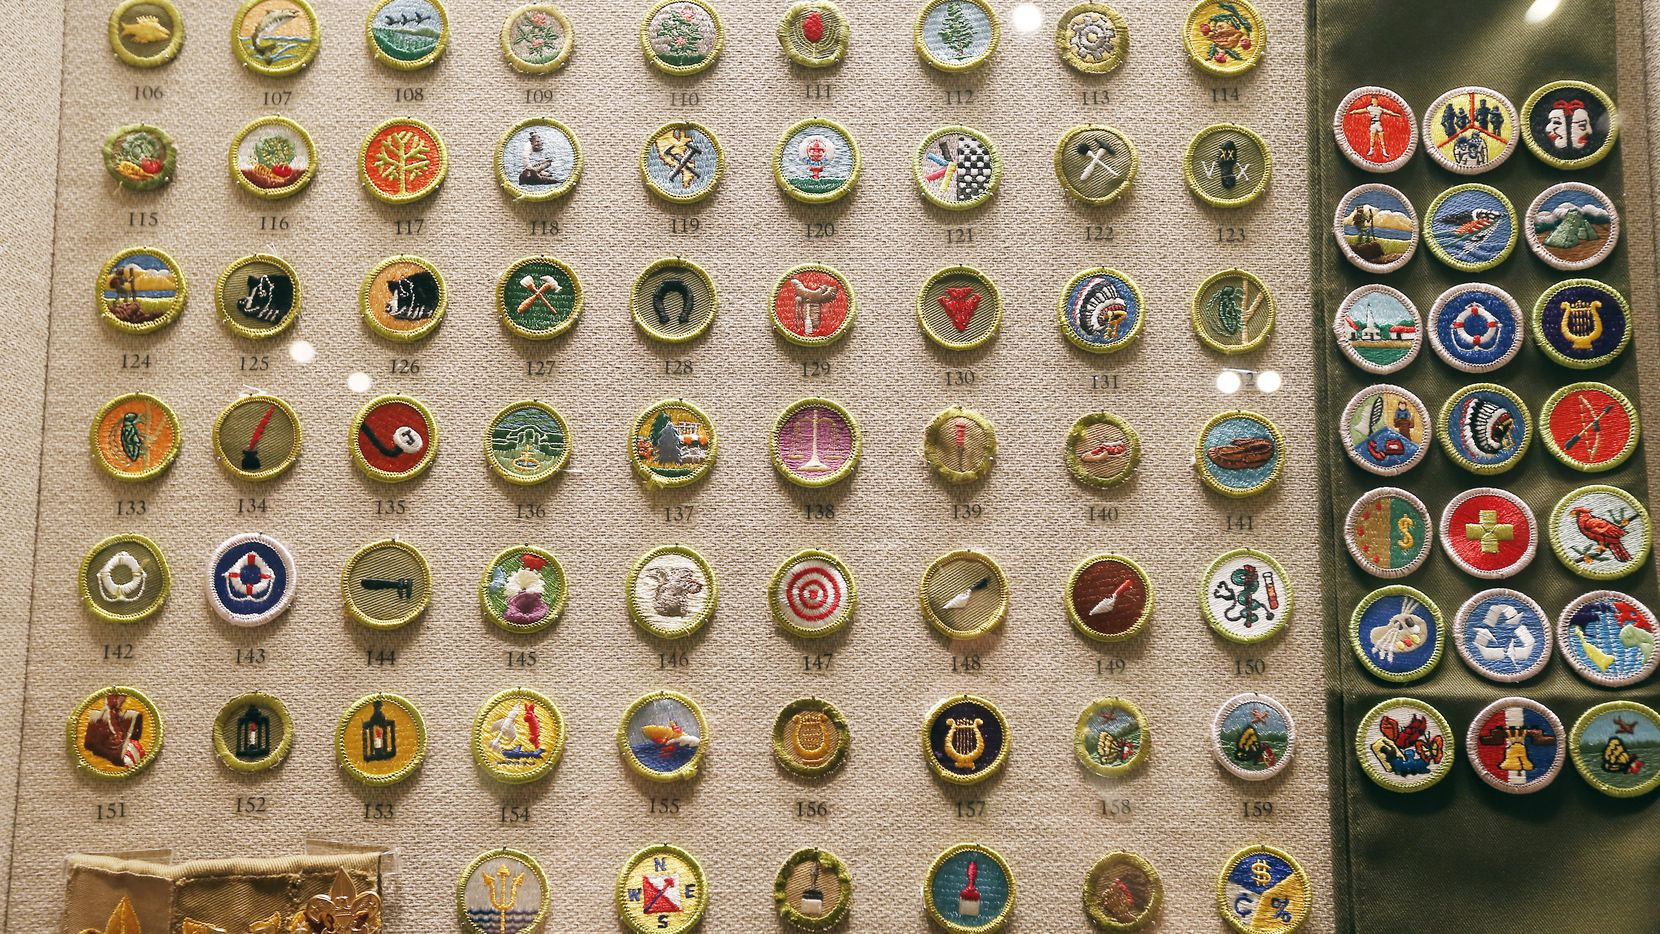 A display of 251 merit badges, some are no longer are given at the Boys Scouts of America National Scouting Museum in Irving. (2015 File Photo/Brandon Wade)